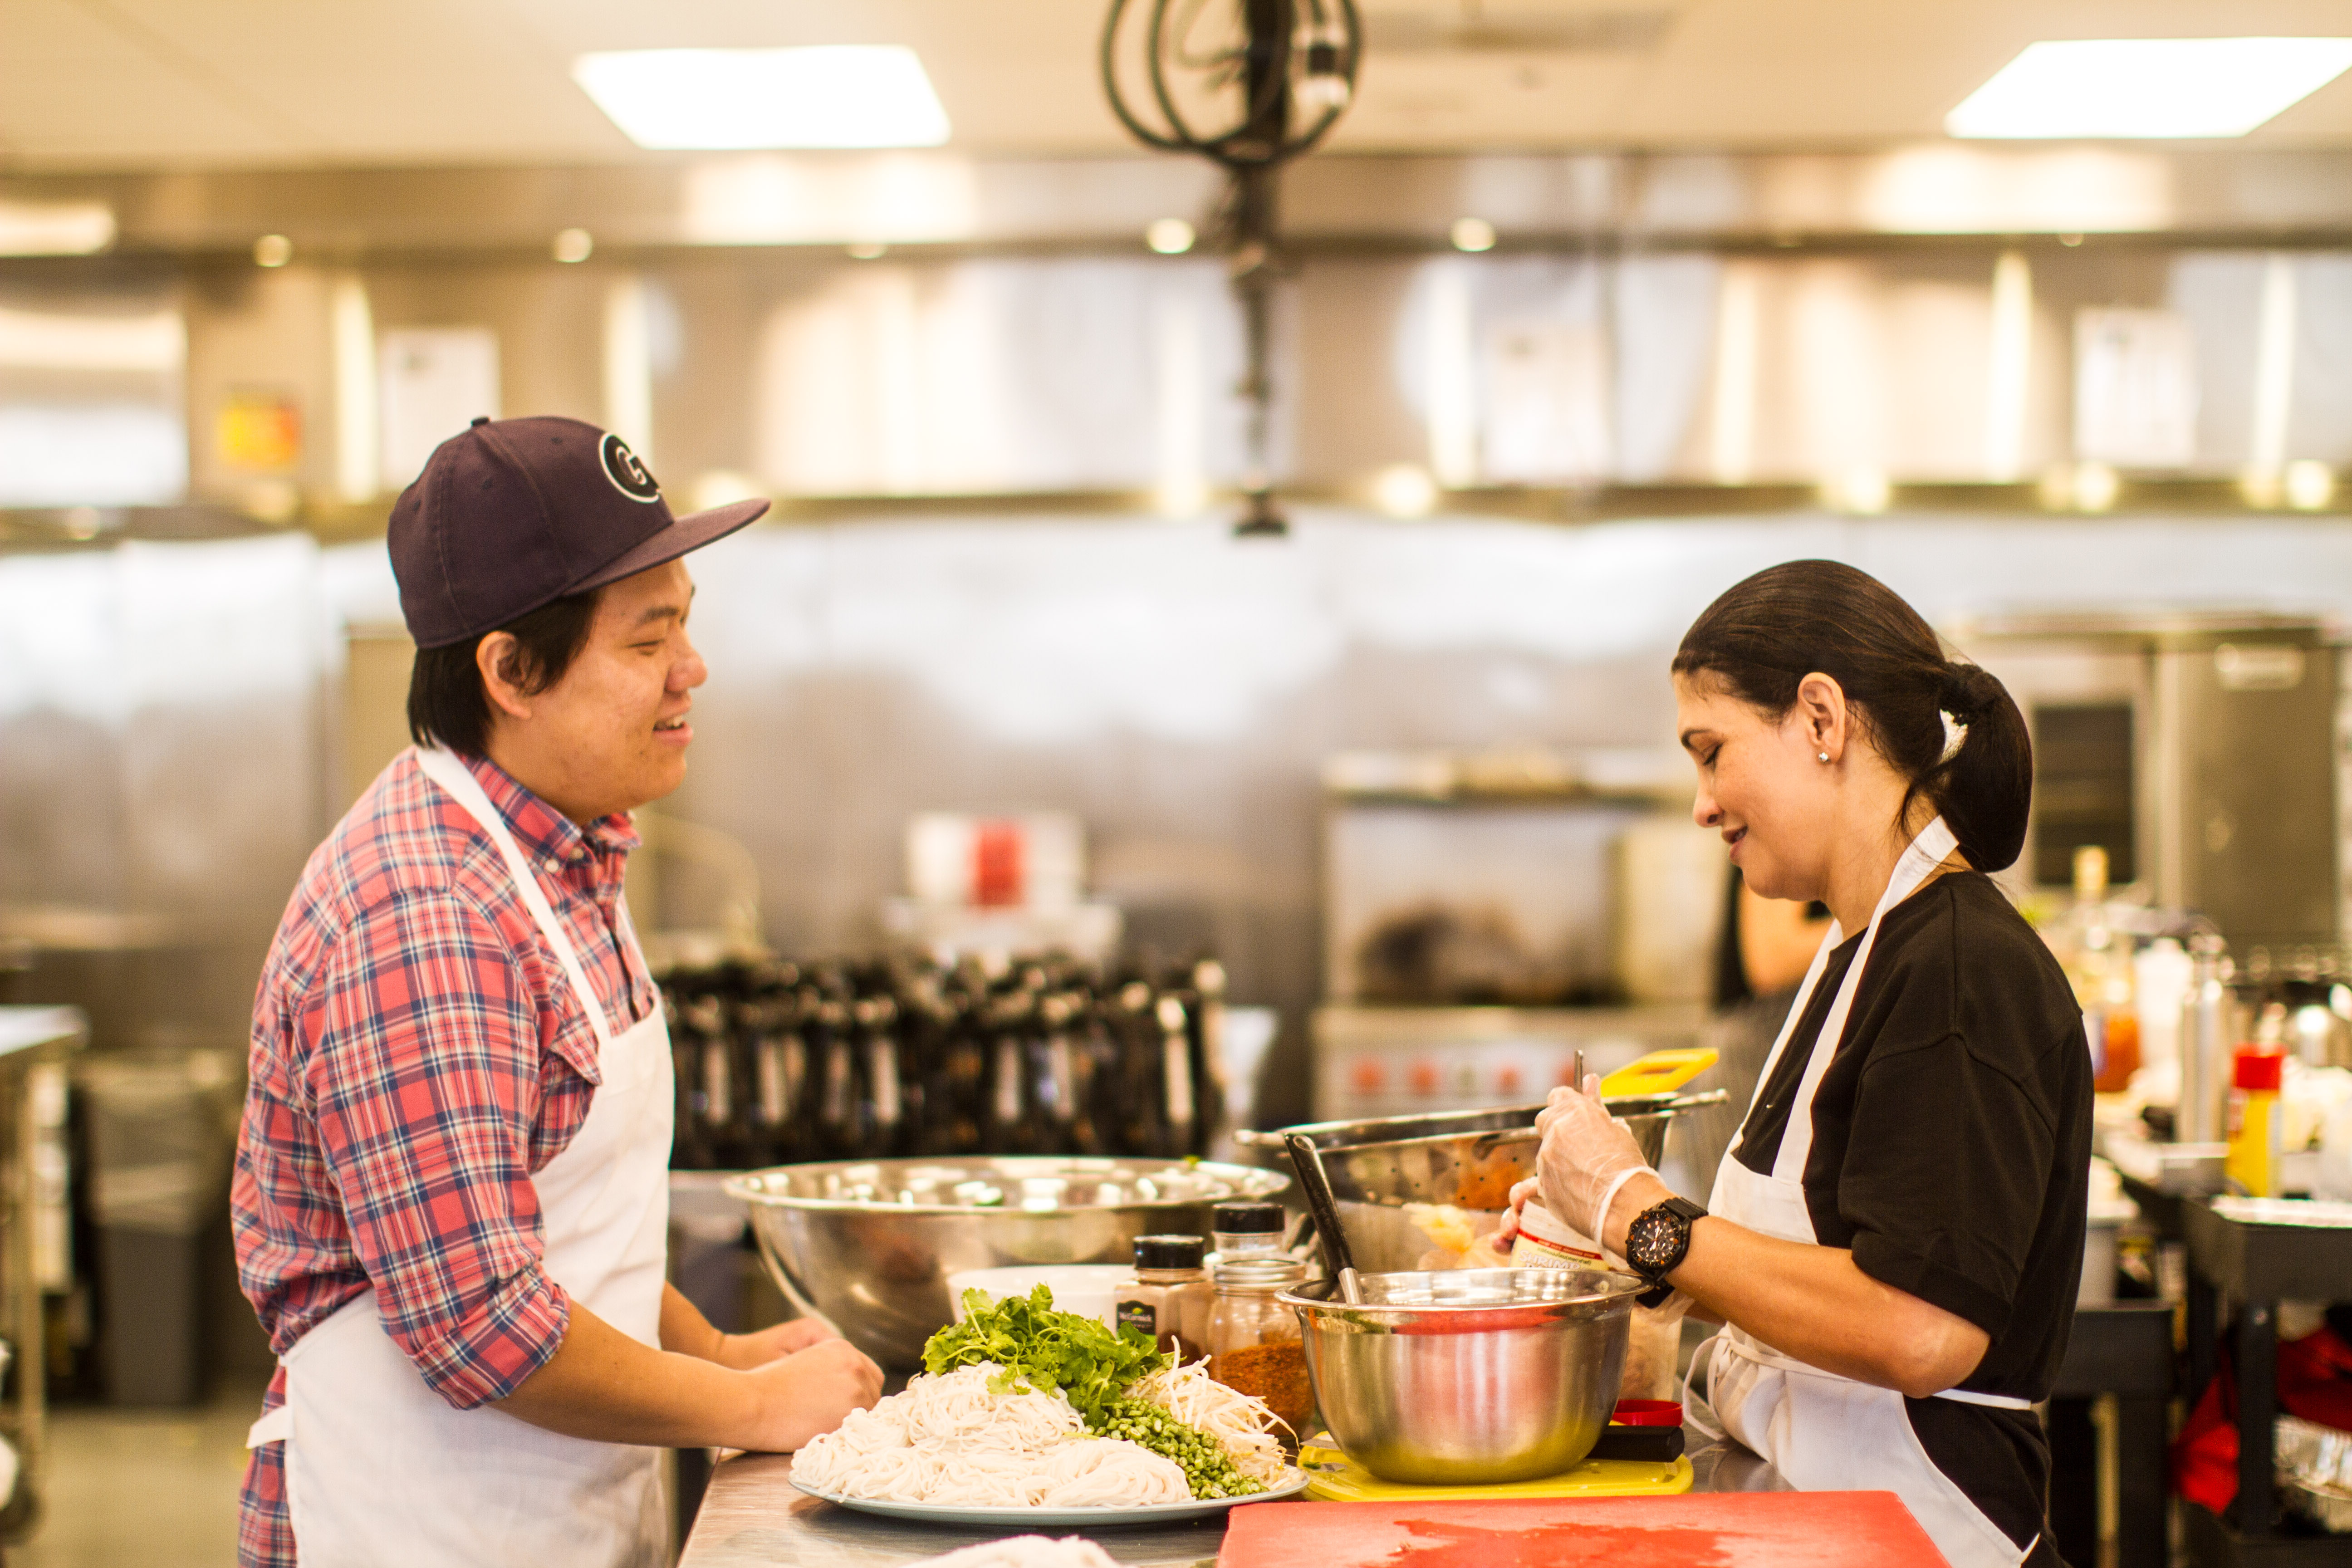 COURTESY FOODHINI Georgetown alumnus Noobtsaa Philip Vang launched Foodhini this week as a startup dedicated to helping immigrant chefs connect with customers seeking ethnic dishes.